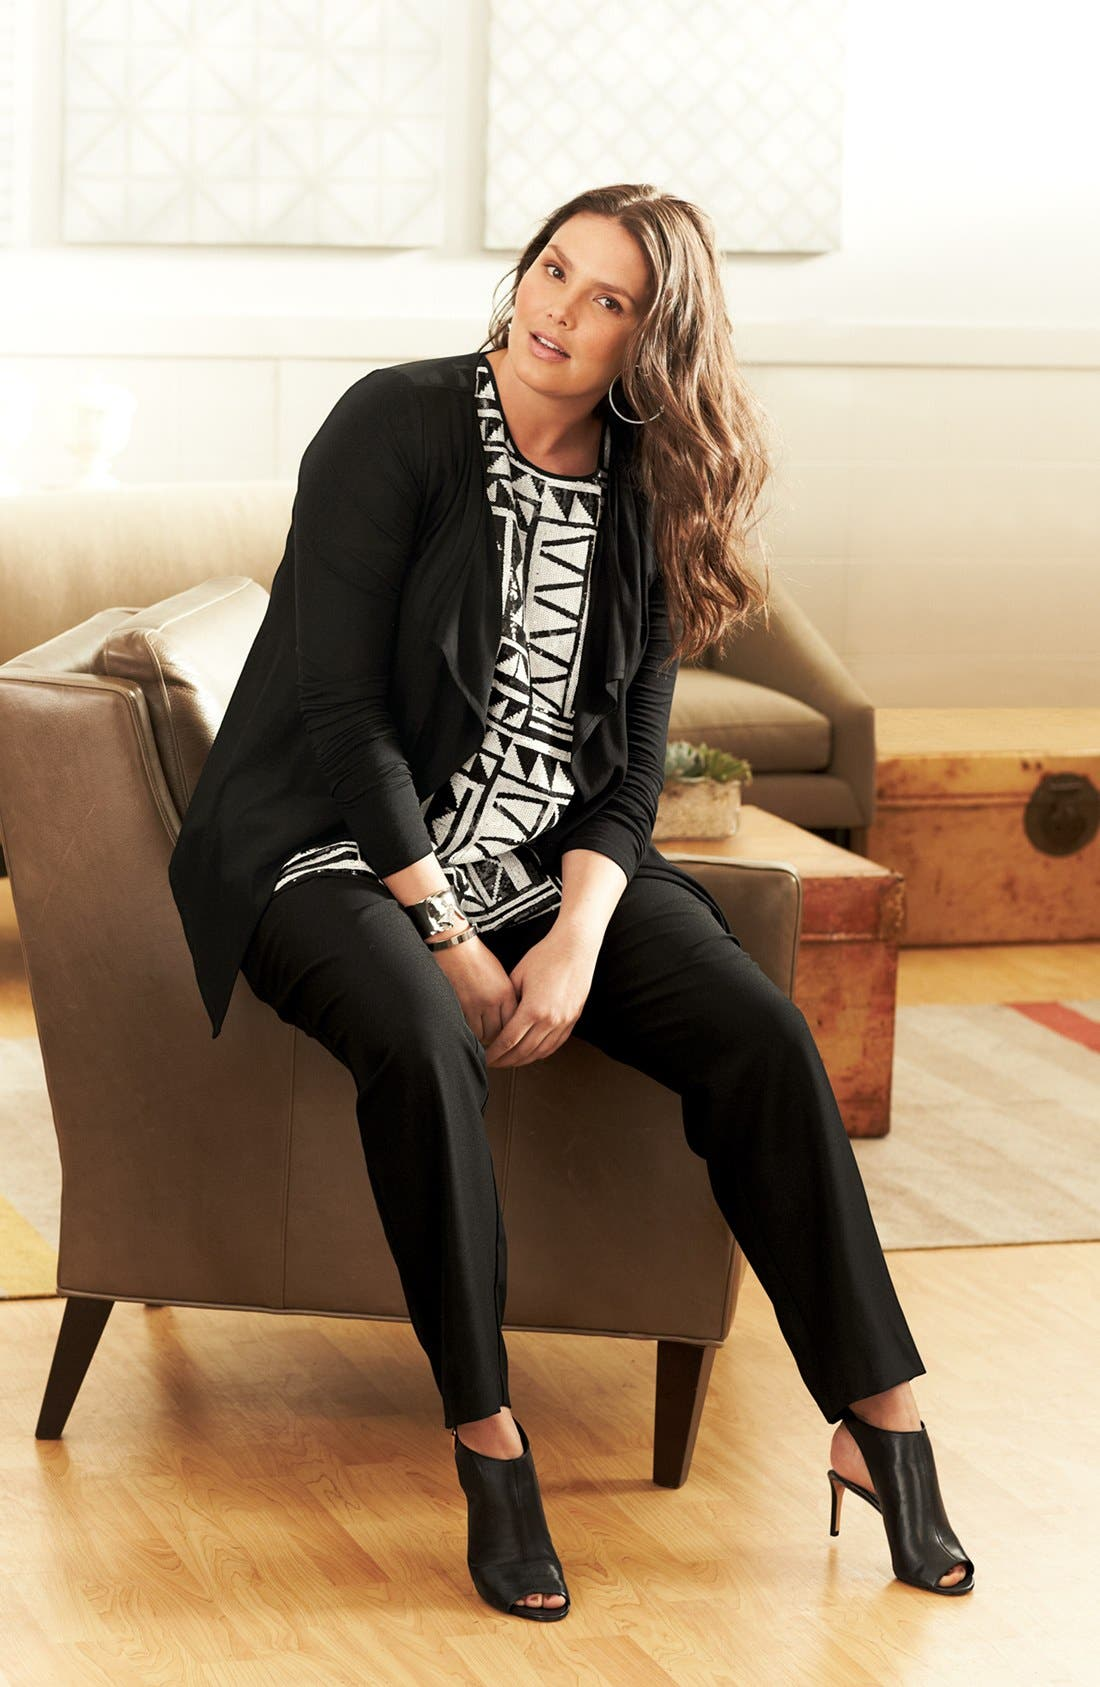 Main Image - Vince Camuto Cardigan, Blouse & Track Pants